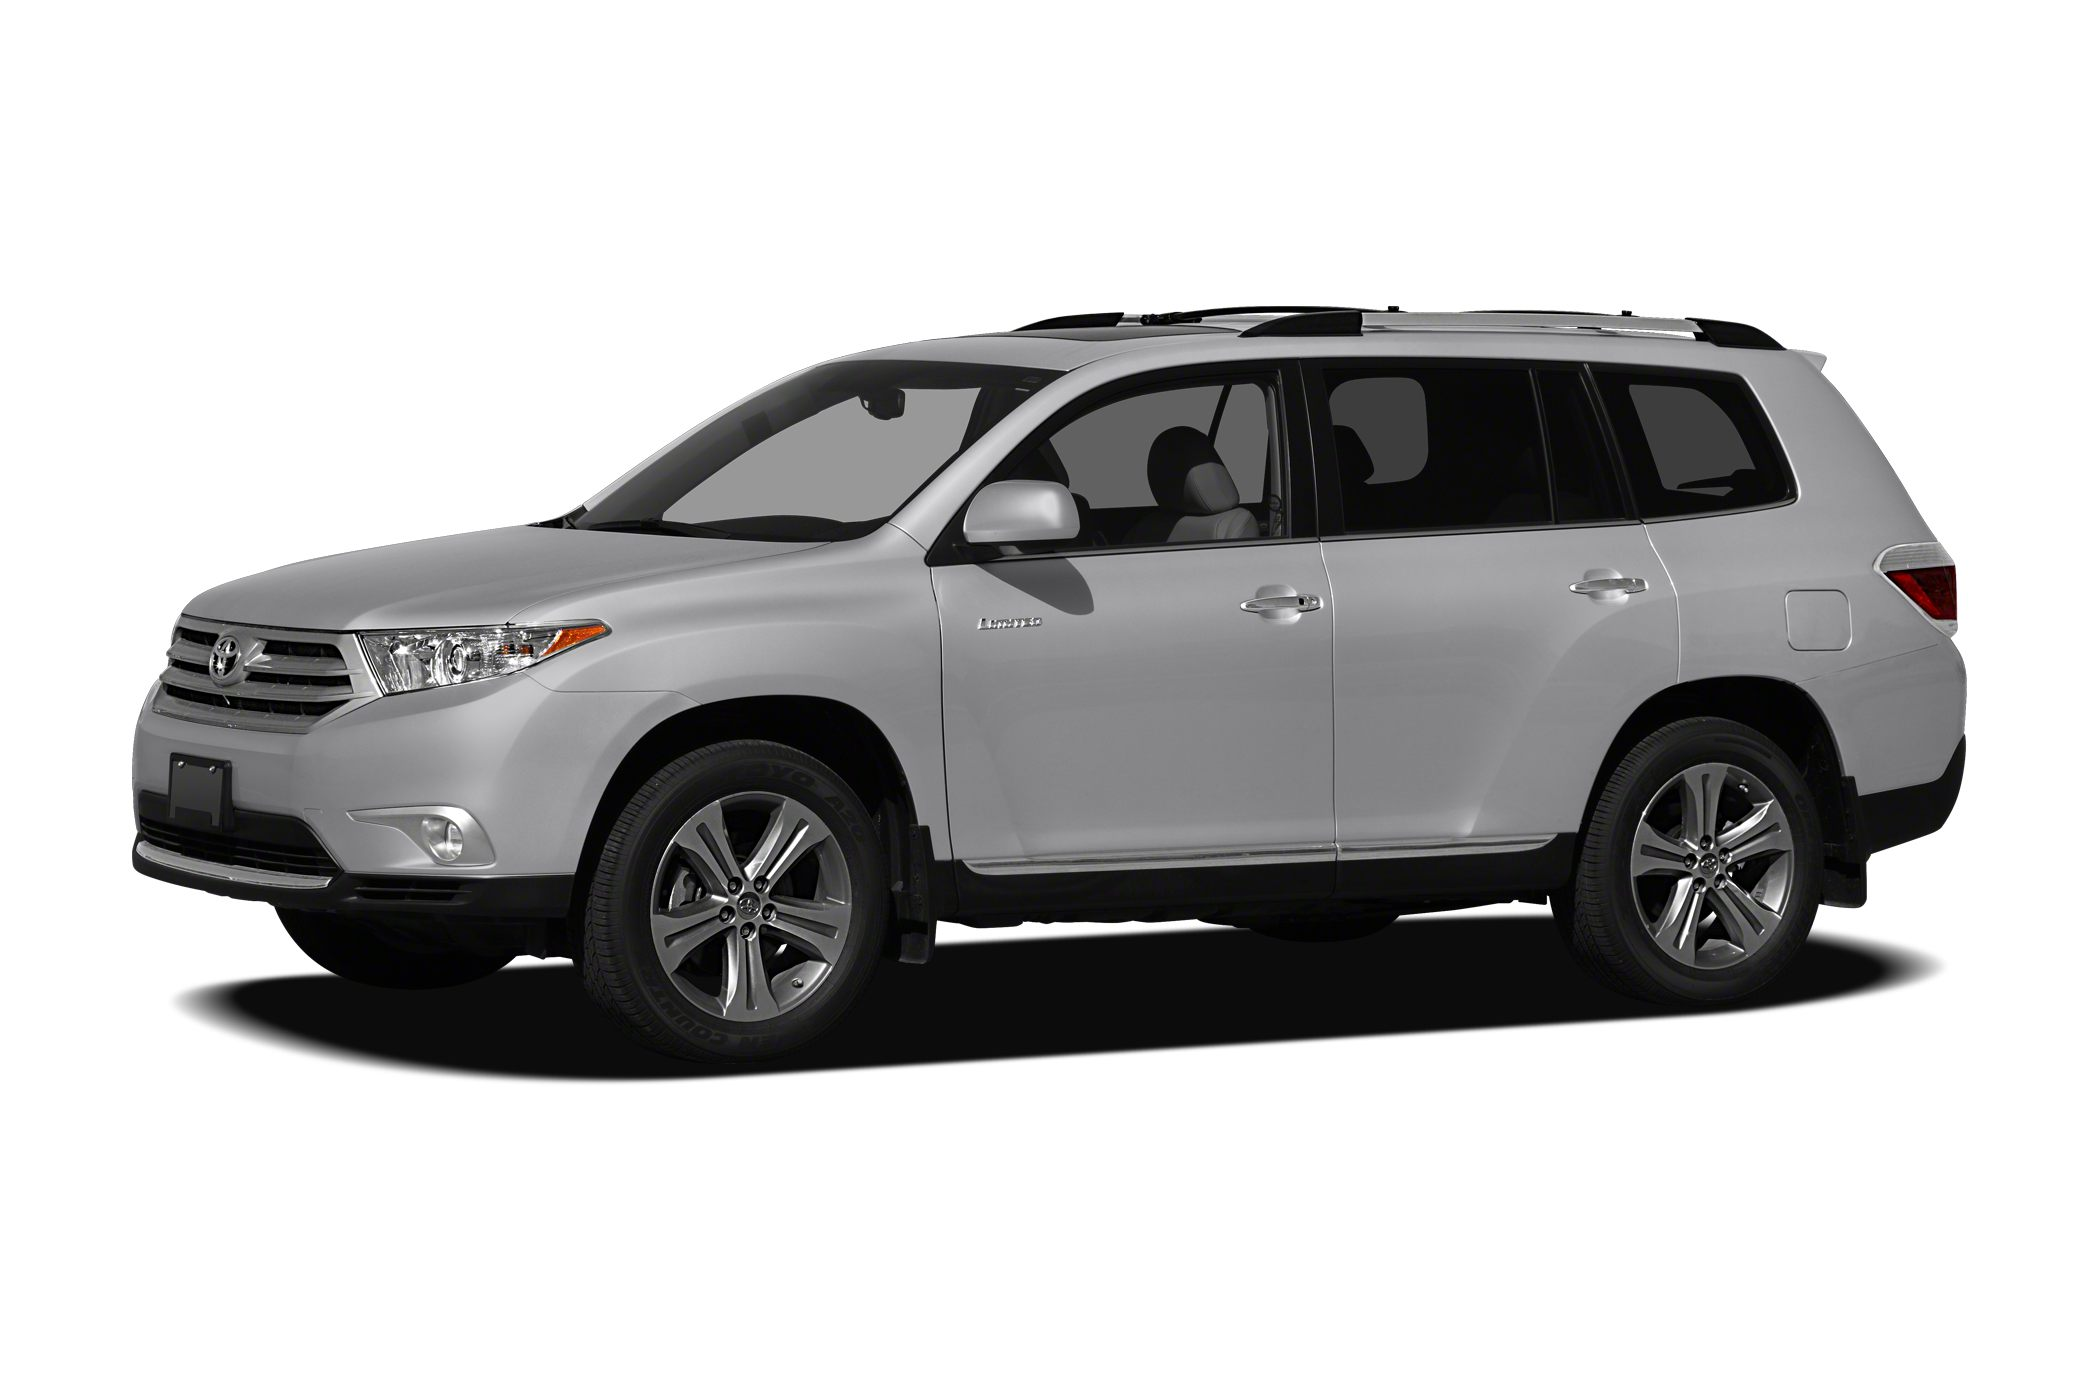 2011 Toyota Highlander Base SUV for sale in Watertown for $25,946 with 52,059 miles